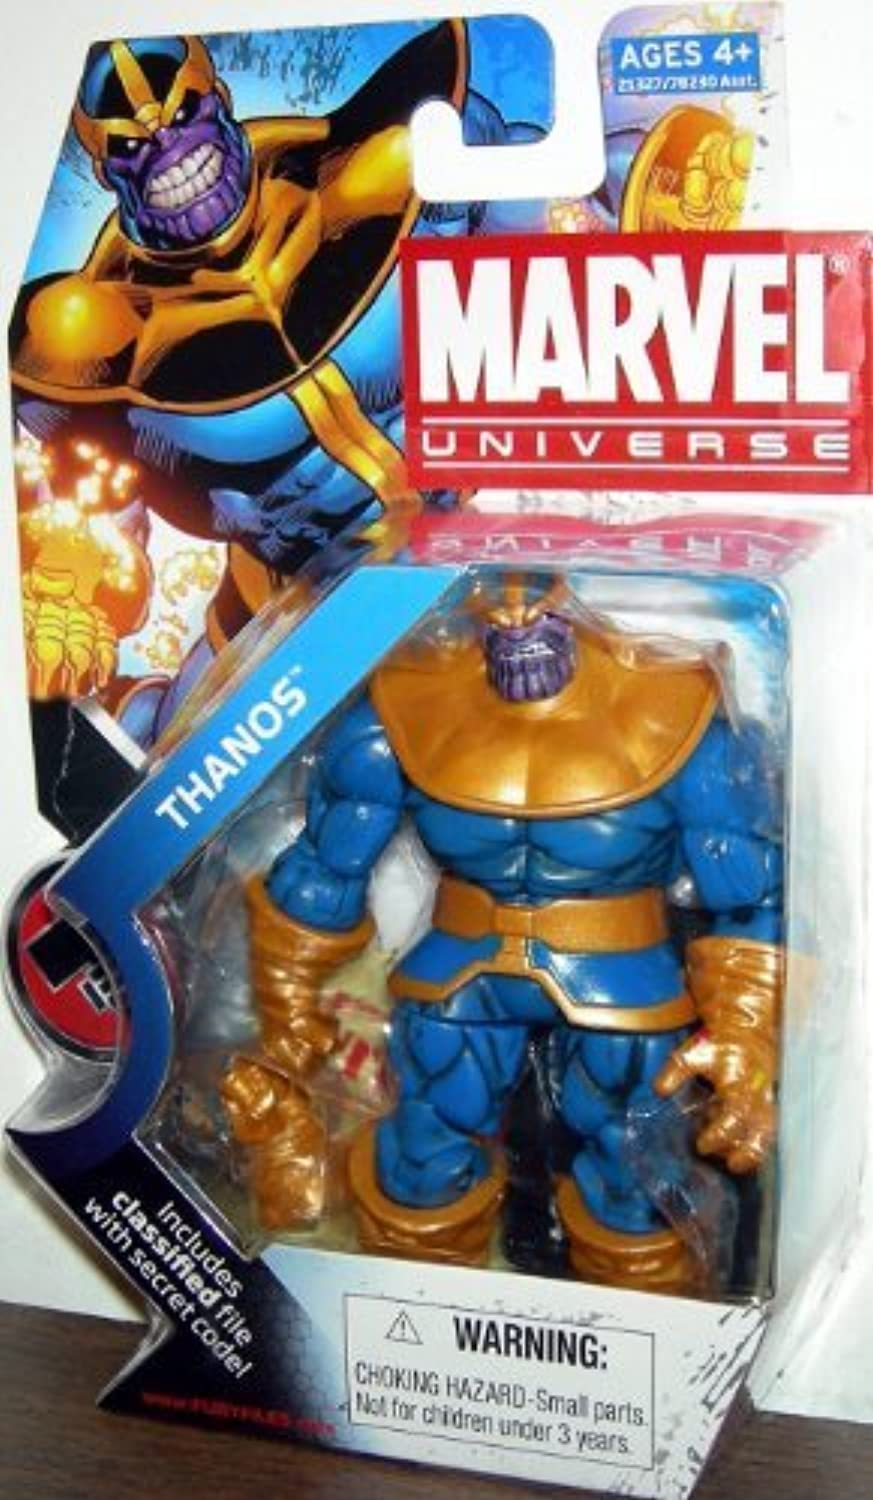 Marvel Universe 3 3 4 Inch Series 11 Action Figure  34 Thanos by Hasbro